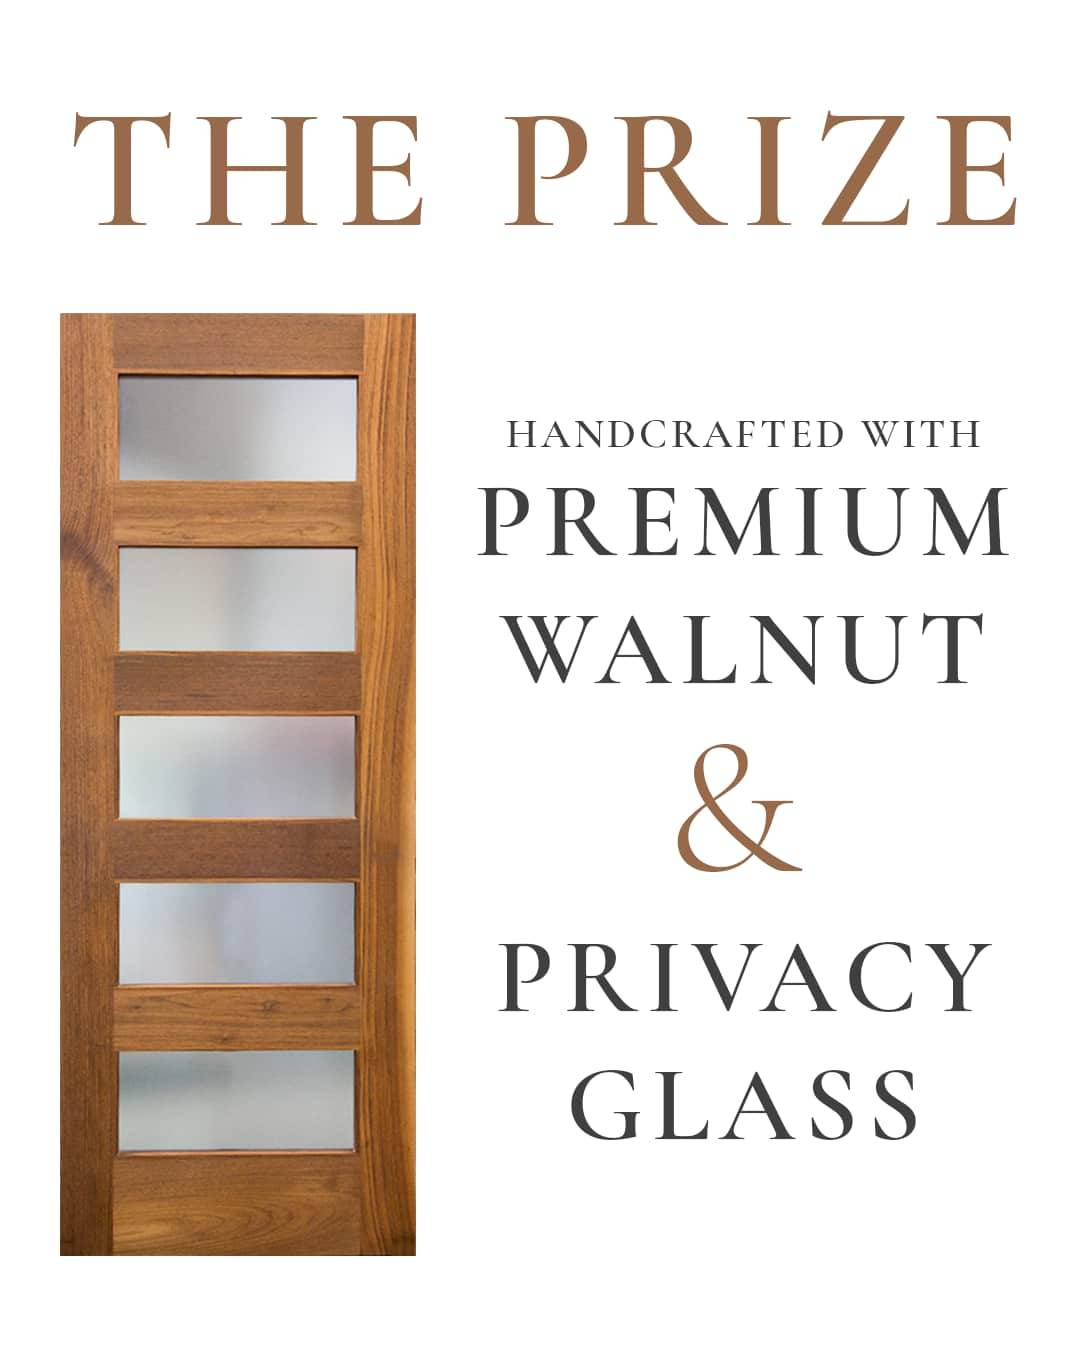 RealCraft Prize Details. Front view of the Modern Five Panel Glass Sliding barn door handcrafted with Premium Walnut wood and Crystal etched Glass.